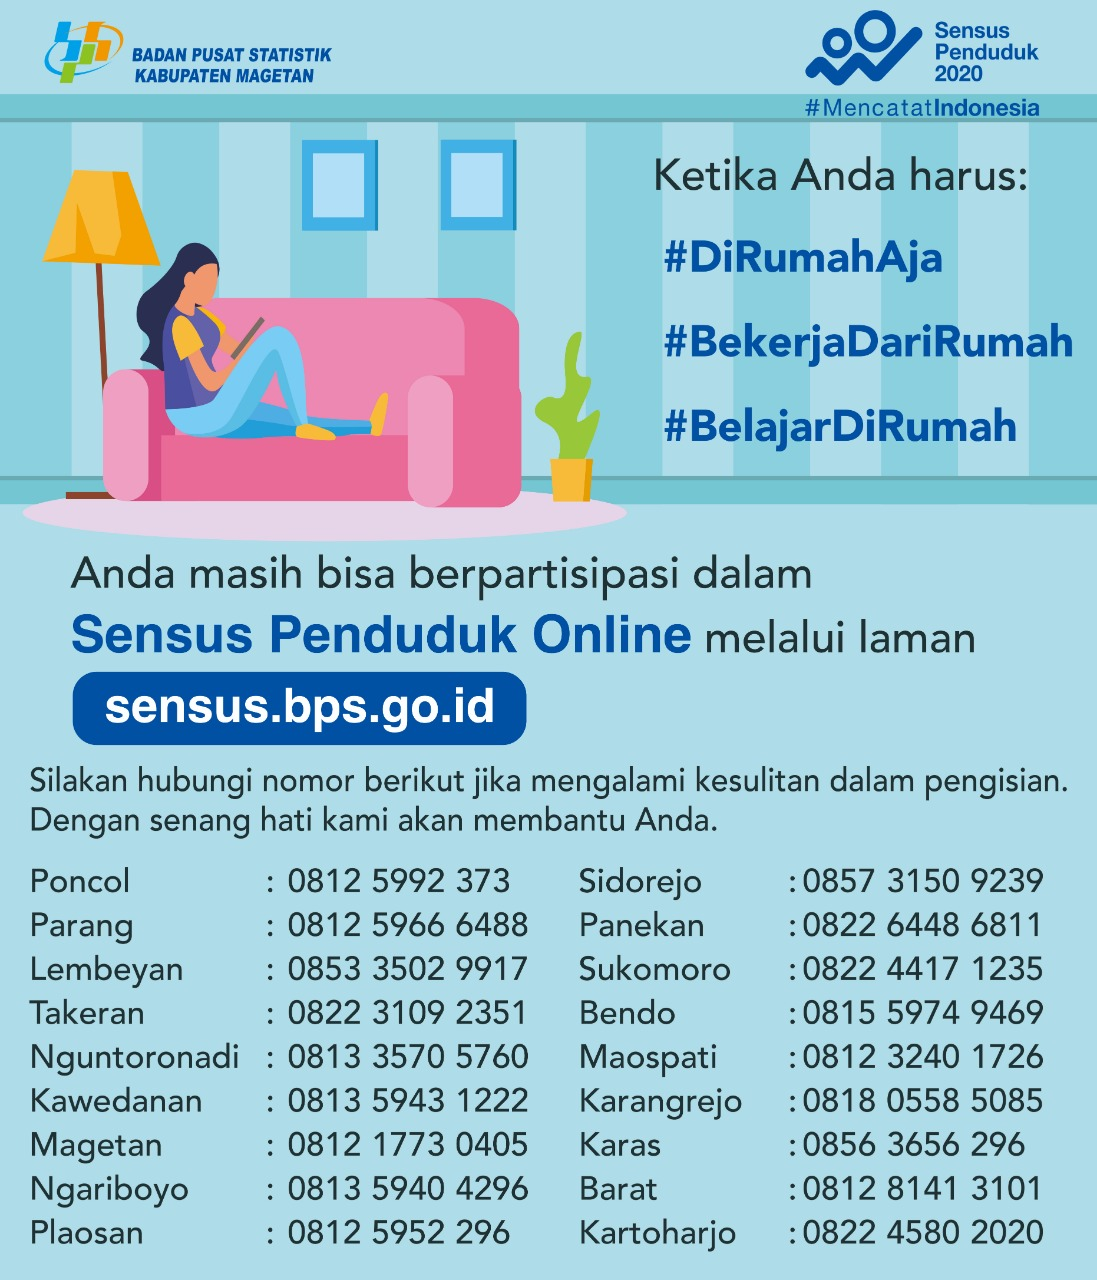 Contact Person Sensus Penduduk Online BPS Kab. Magetan